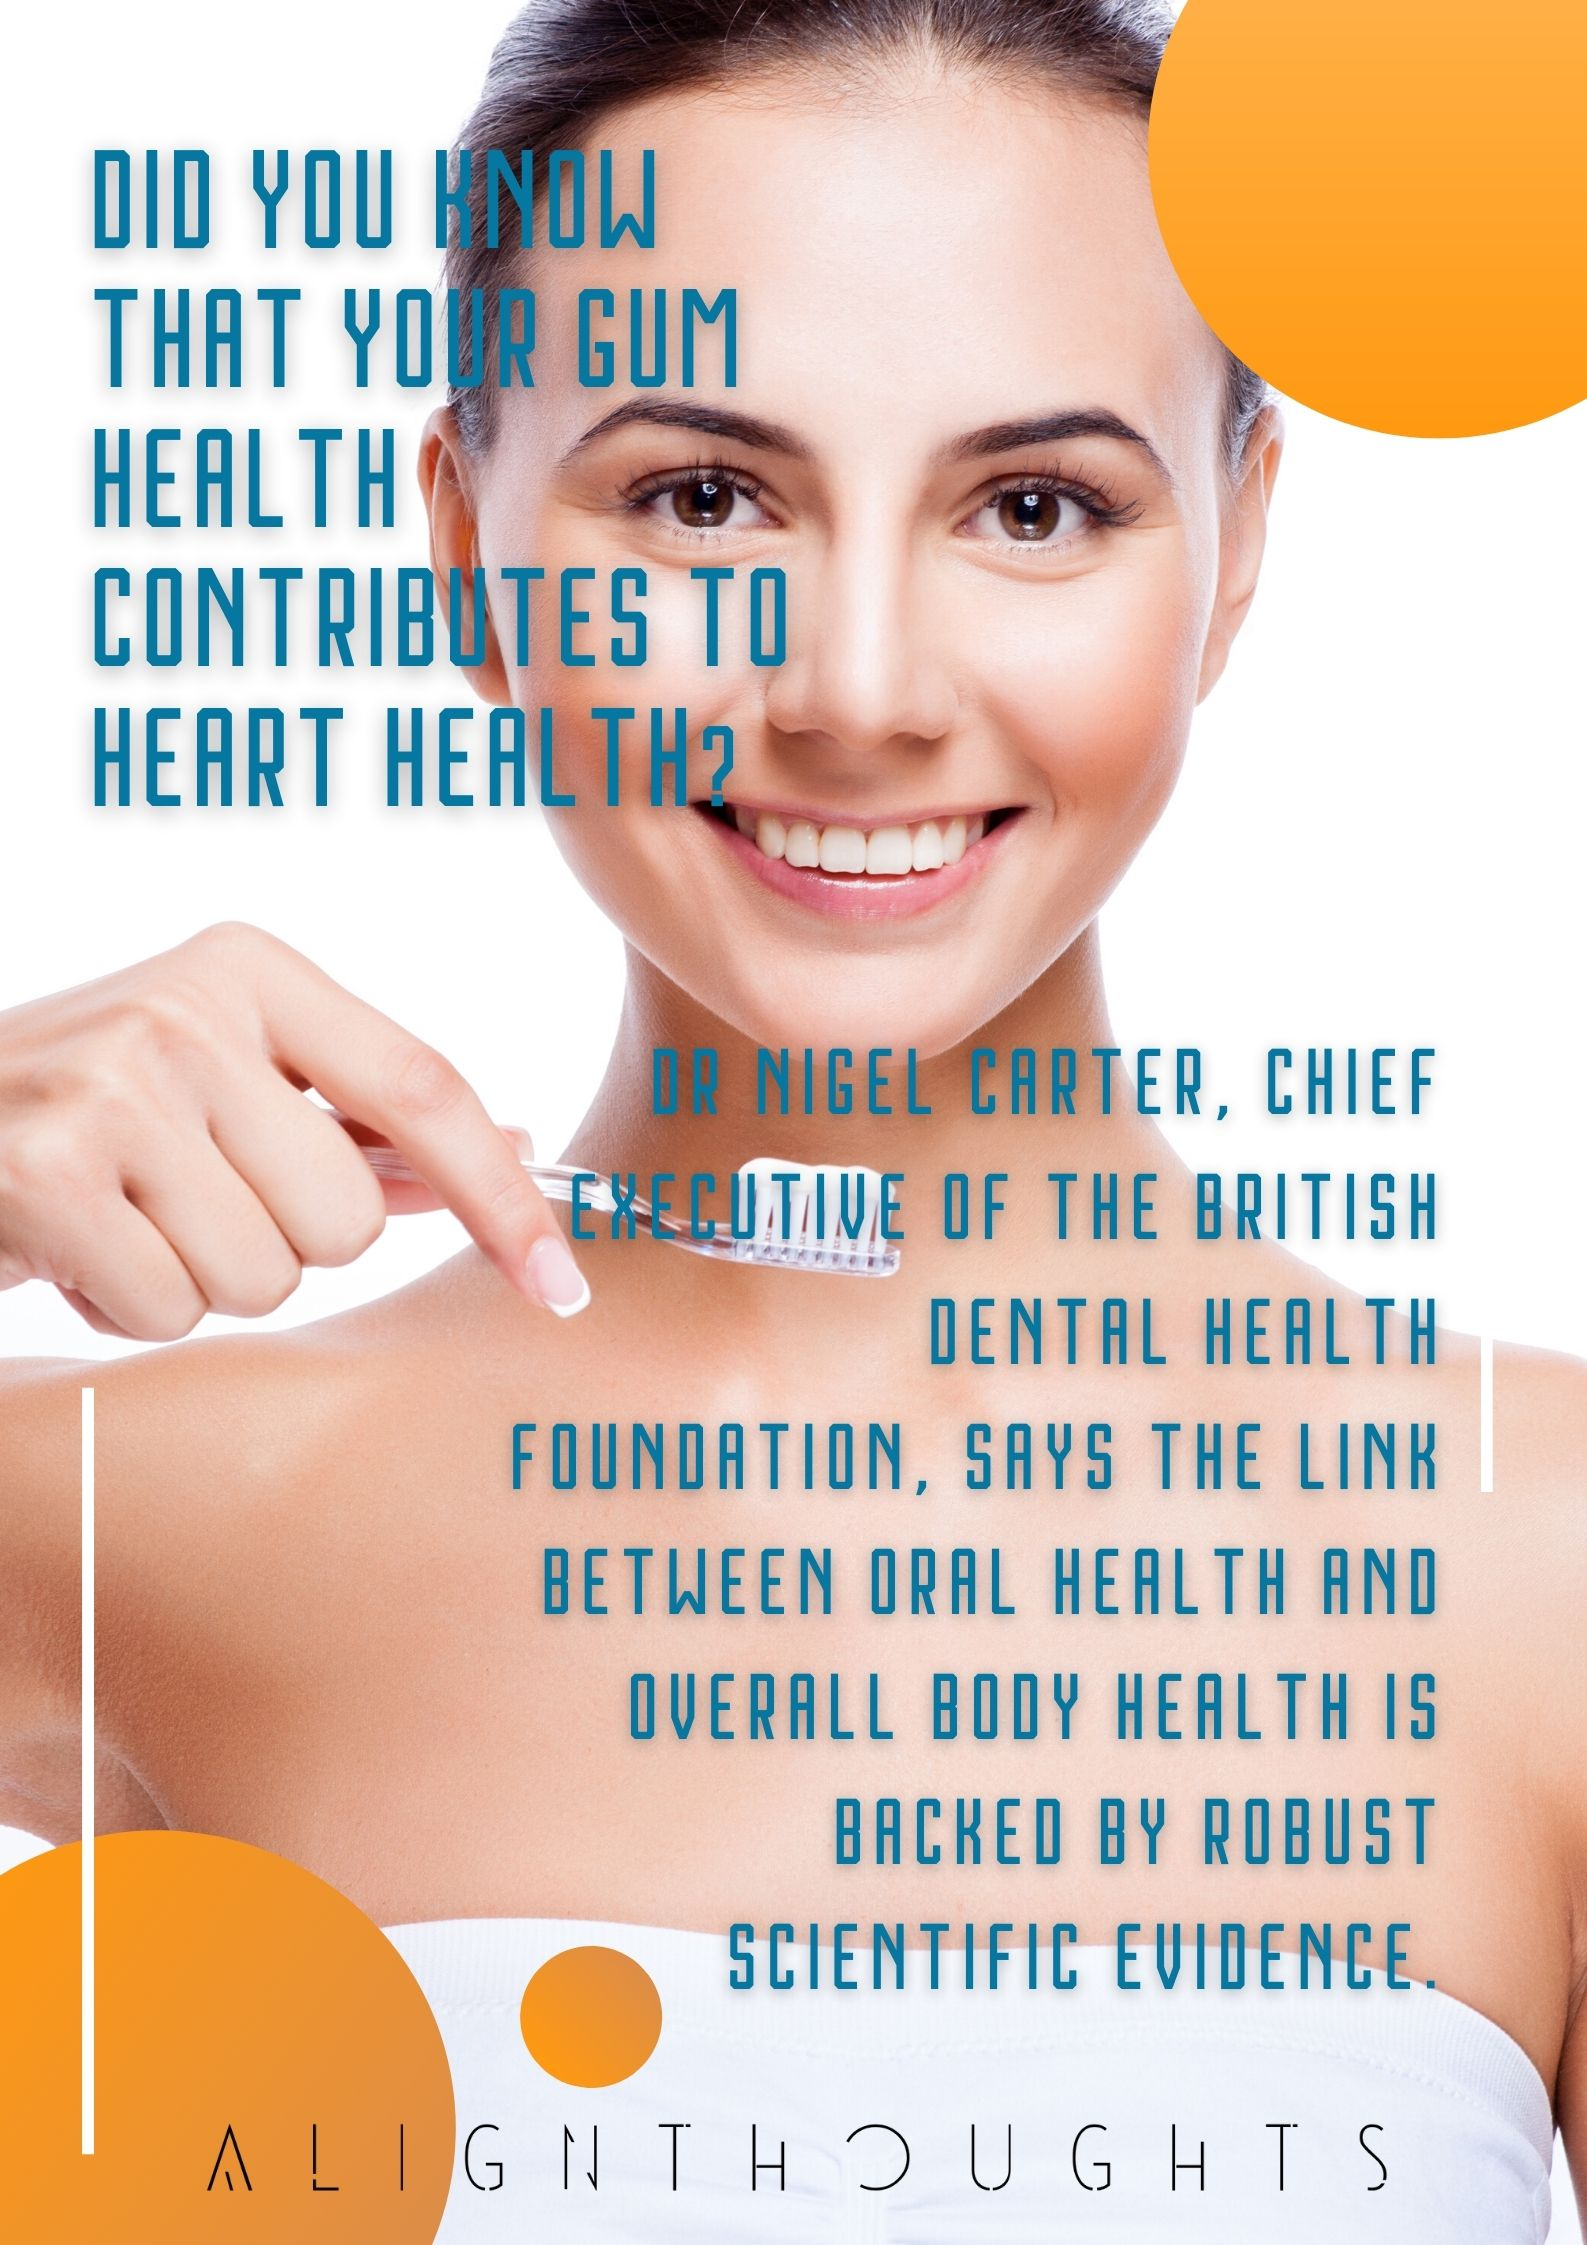 healthy lifestyle for heart-alignthoughts